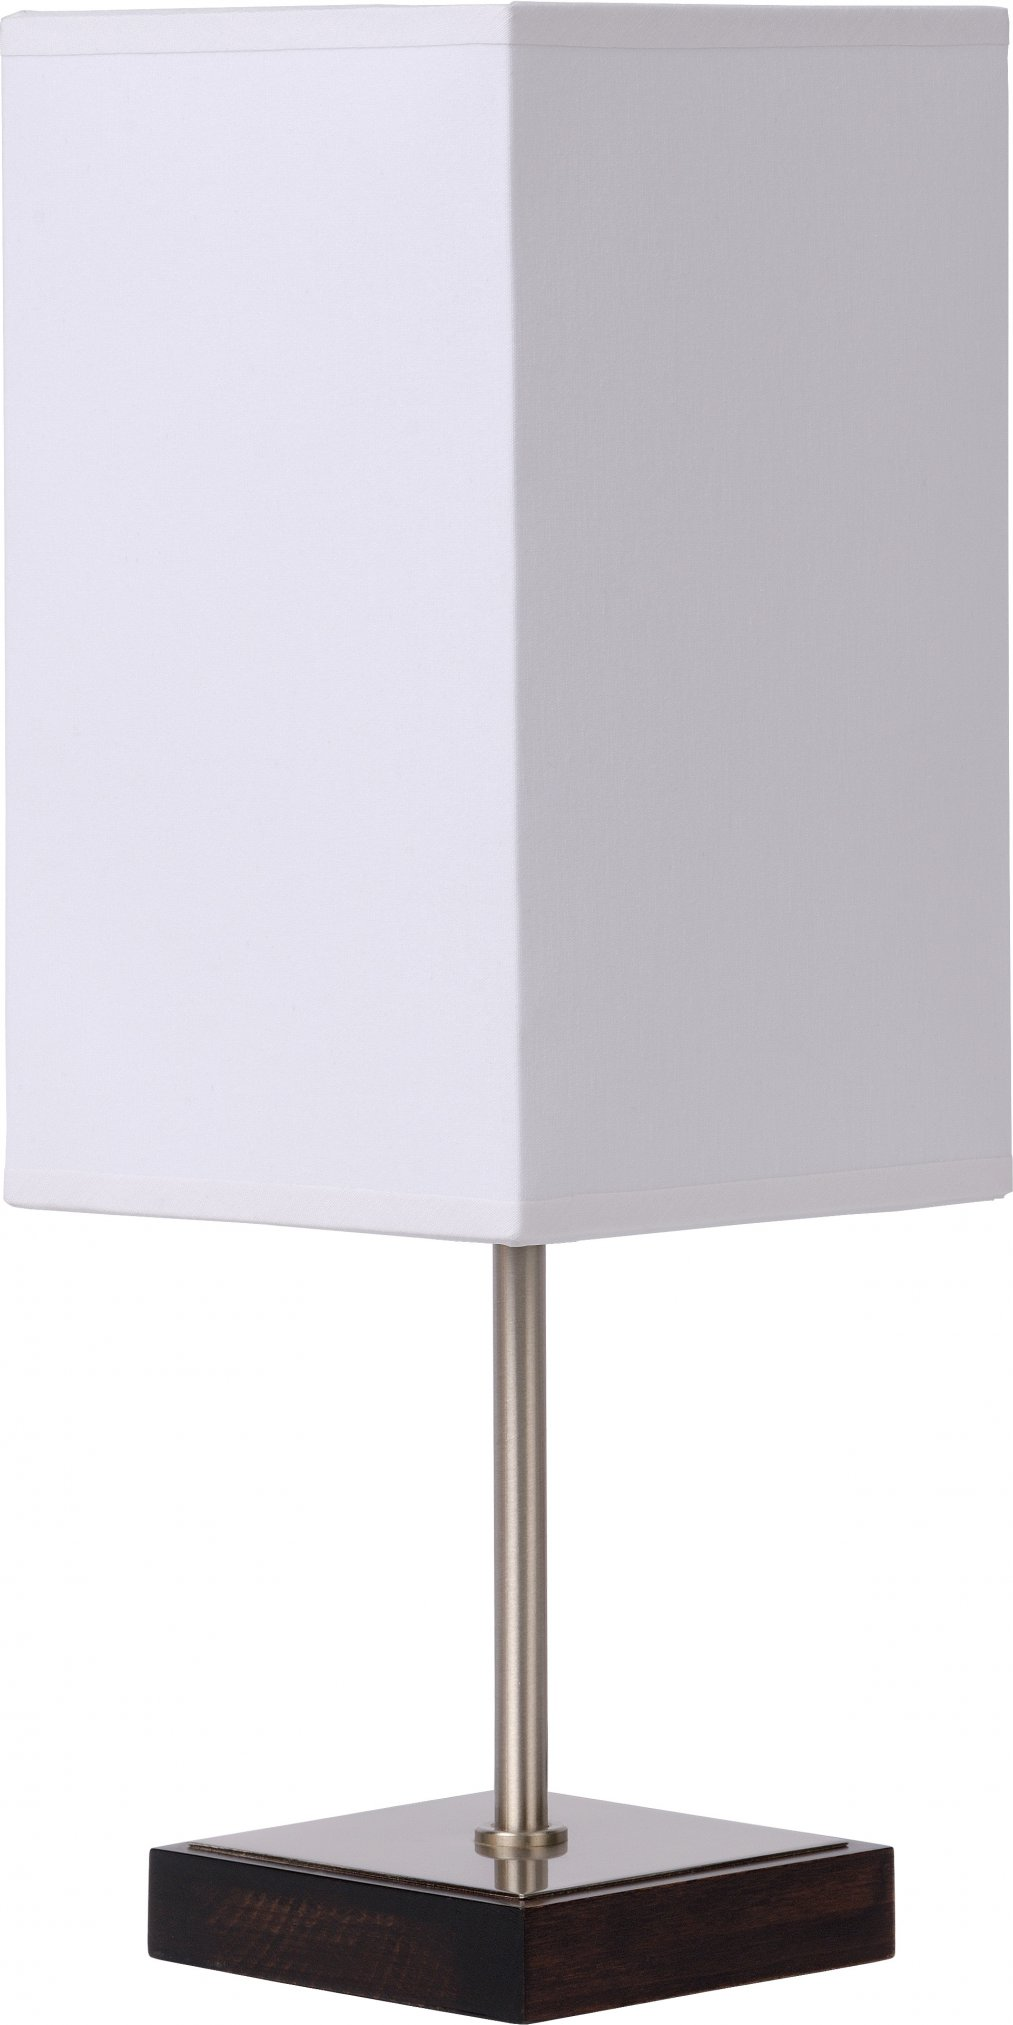 Lucide Duna-Touch Table Lamp